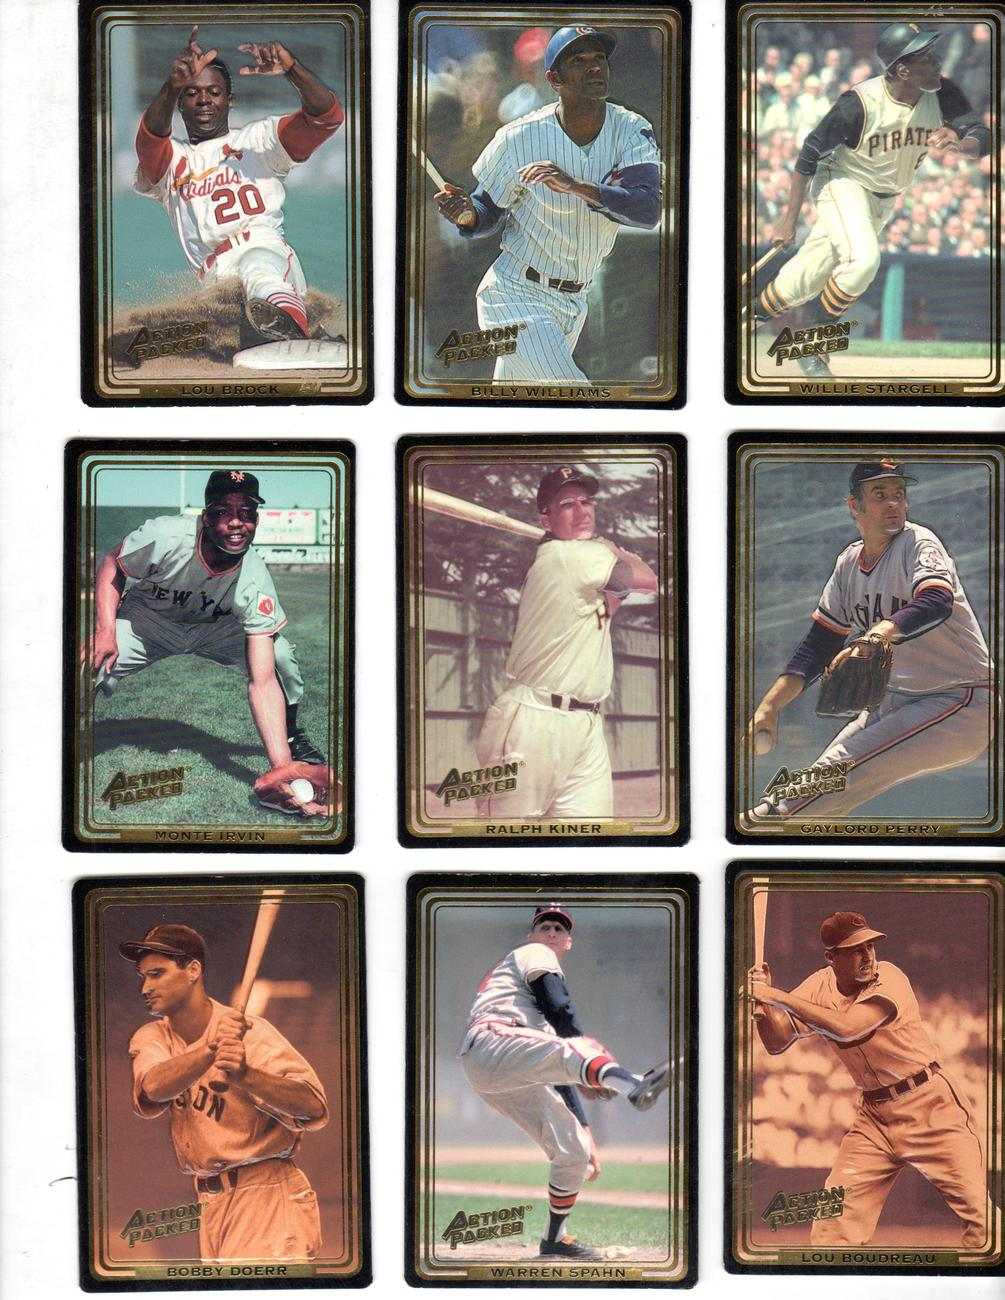 The Ultimate Allstars Baseball Cards (AMOCO & CocaCola)